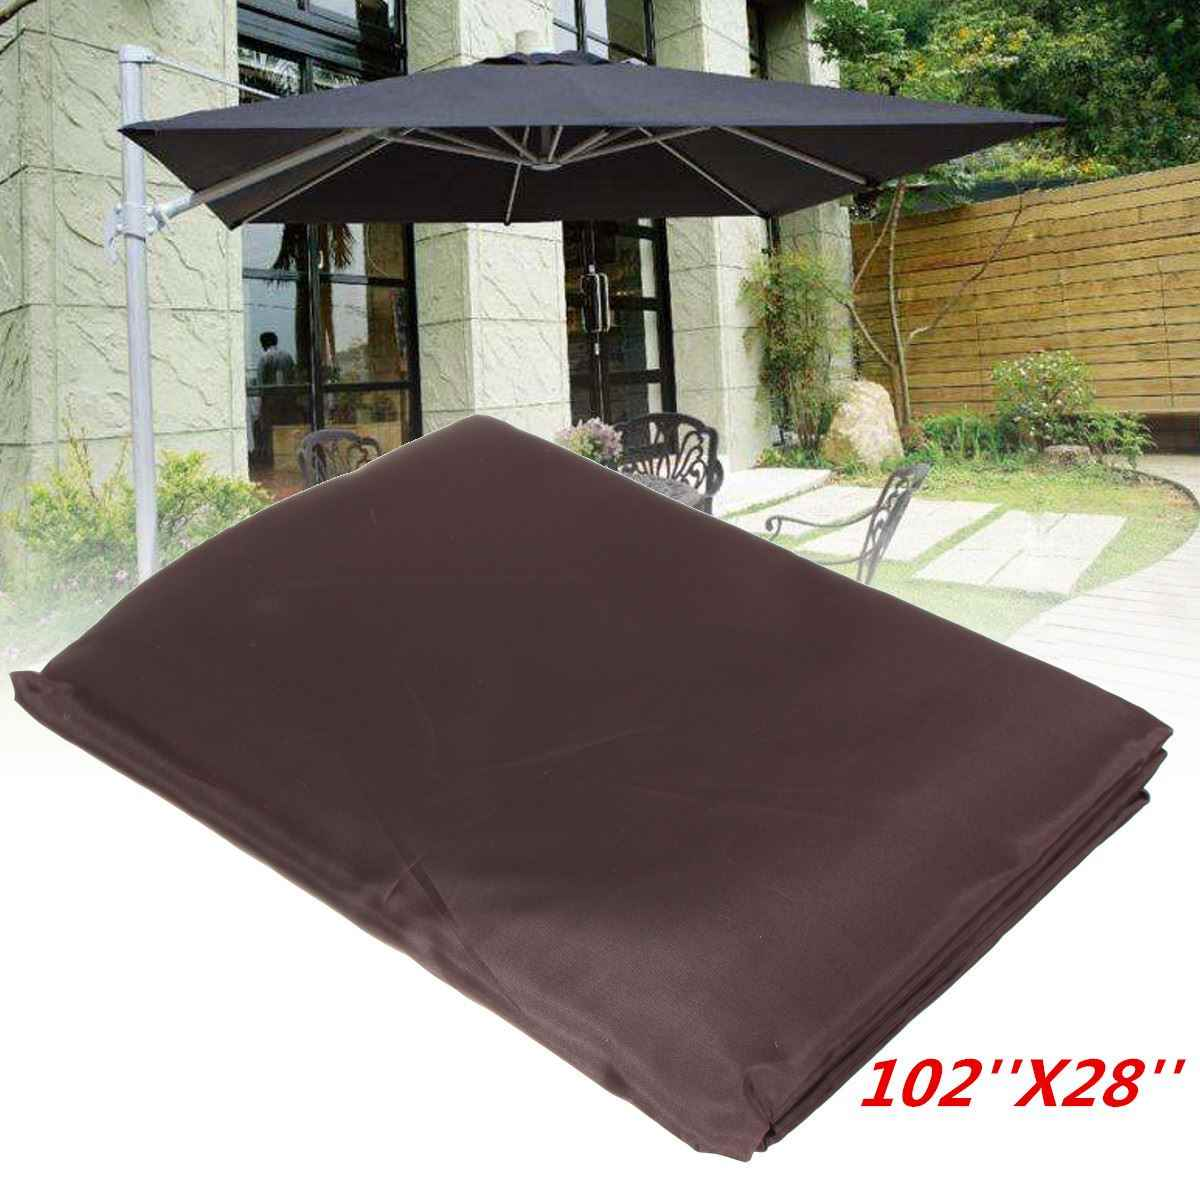 Garden Patio Umbrella Rain Cover Waterproof Polyester Canopy Protective Cover Bag Outdoor Rain Gear Accessories Fit 9-11ft